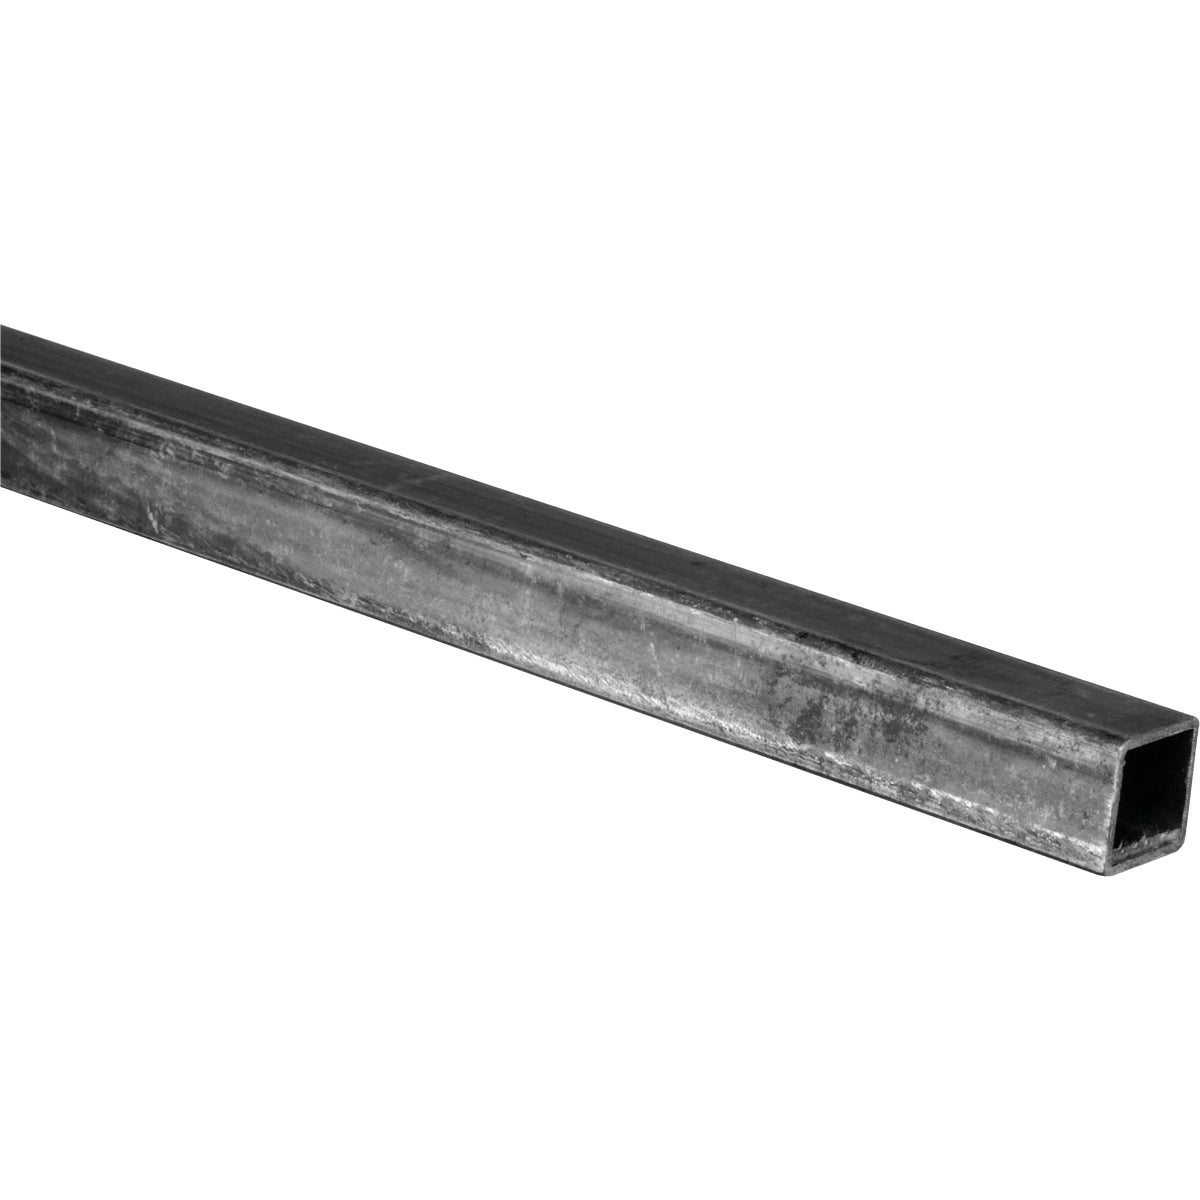 3/4X4' 16GA SQUARE TUBE - N215707 by National Mfg Co